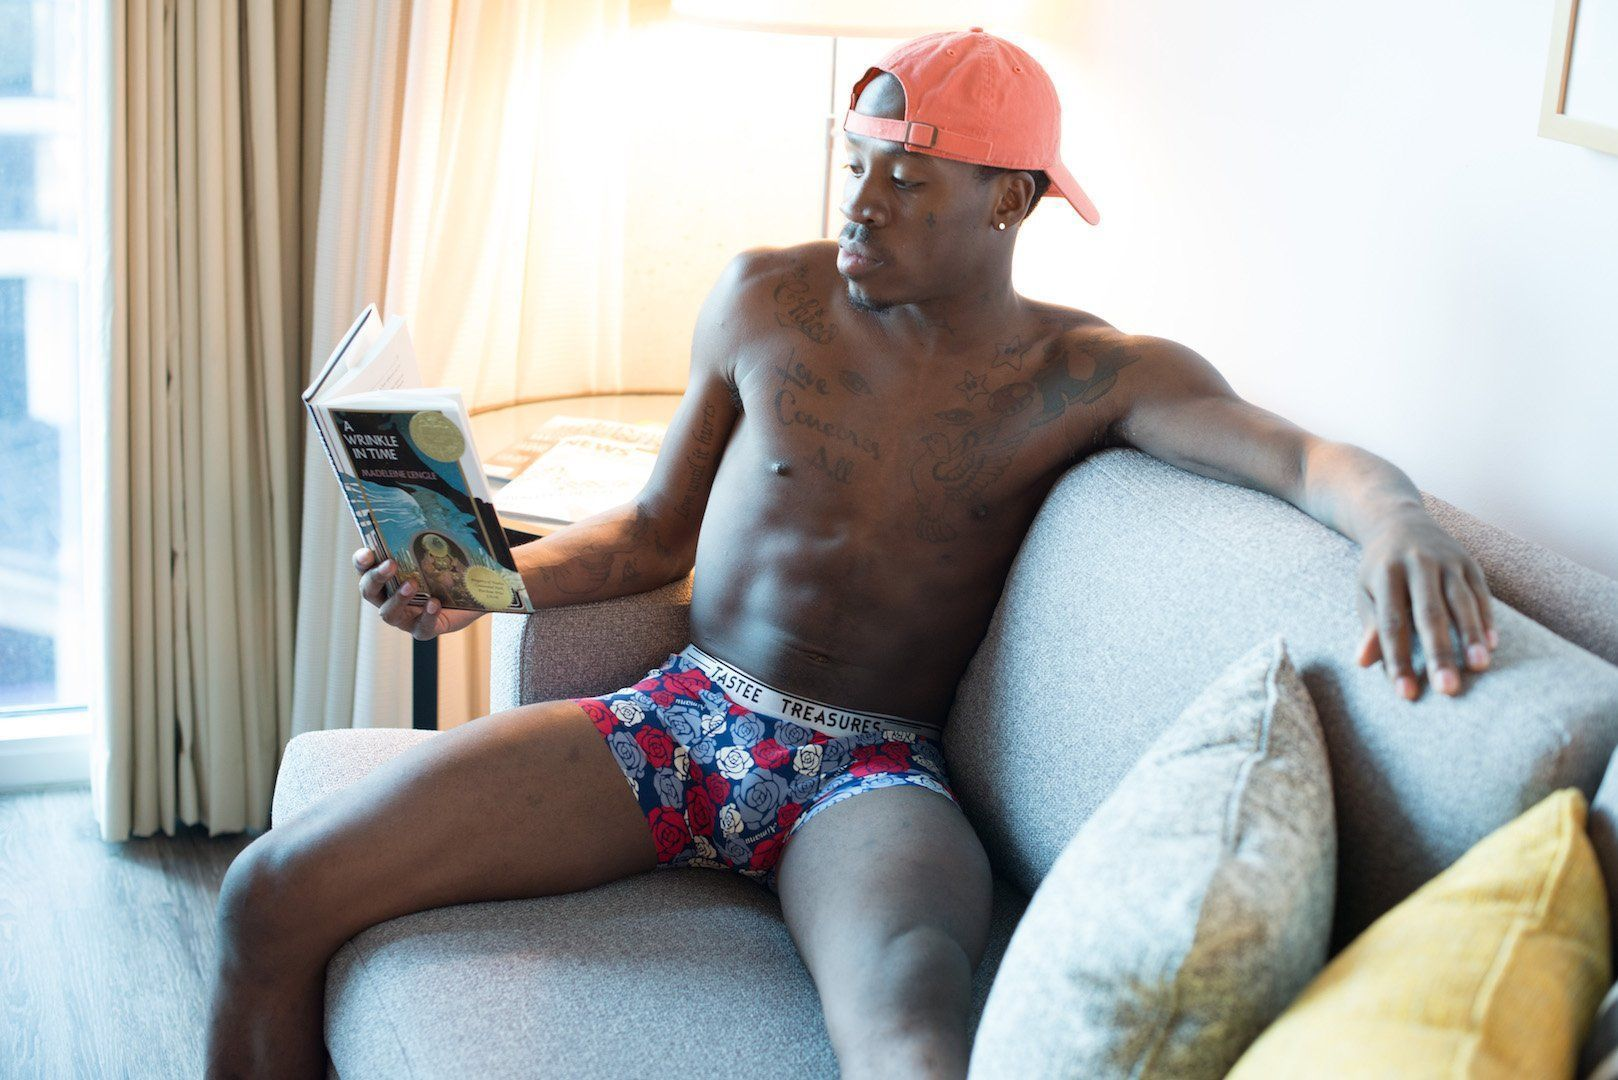 The Best Men's Underwear for Those Hot Summer Days